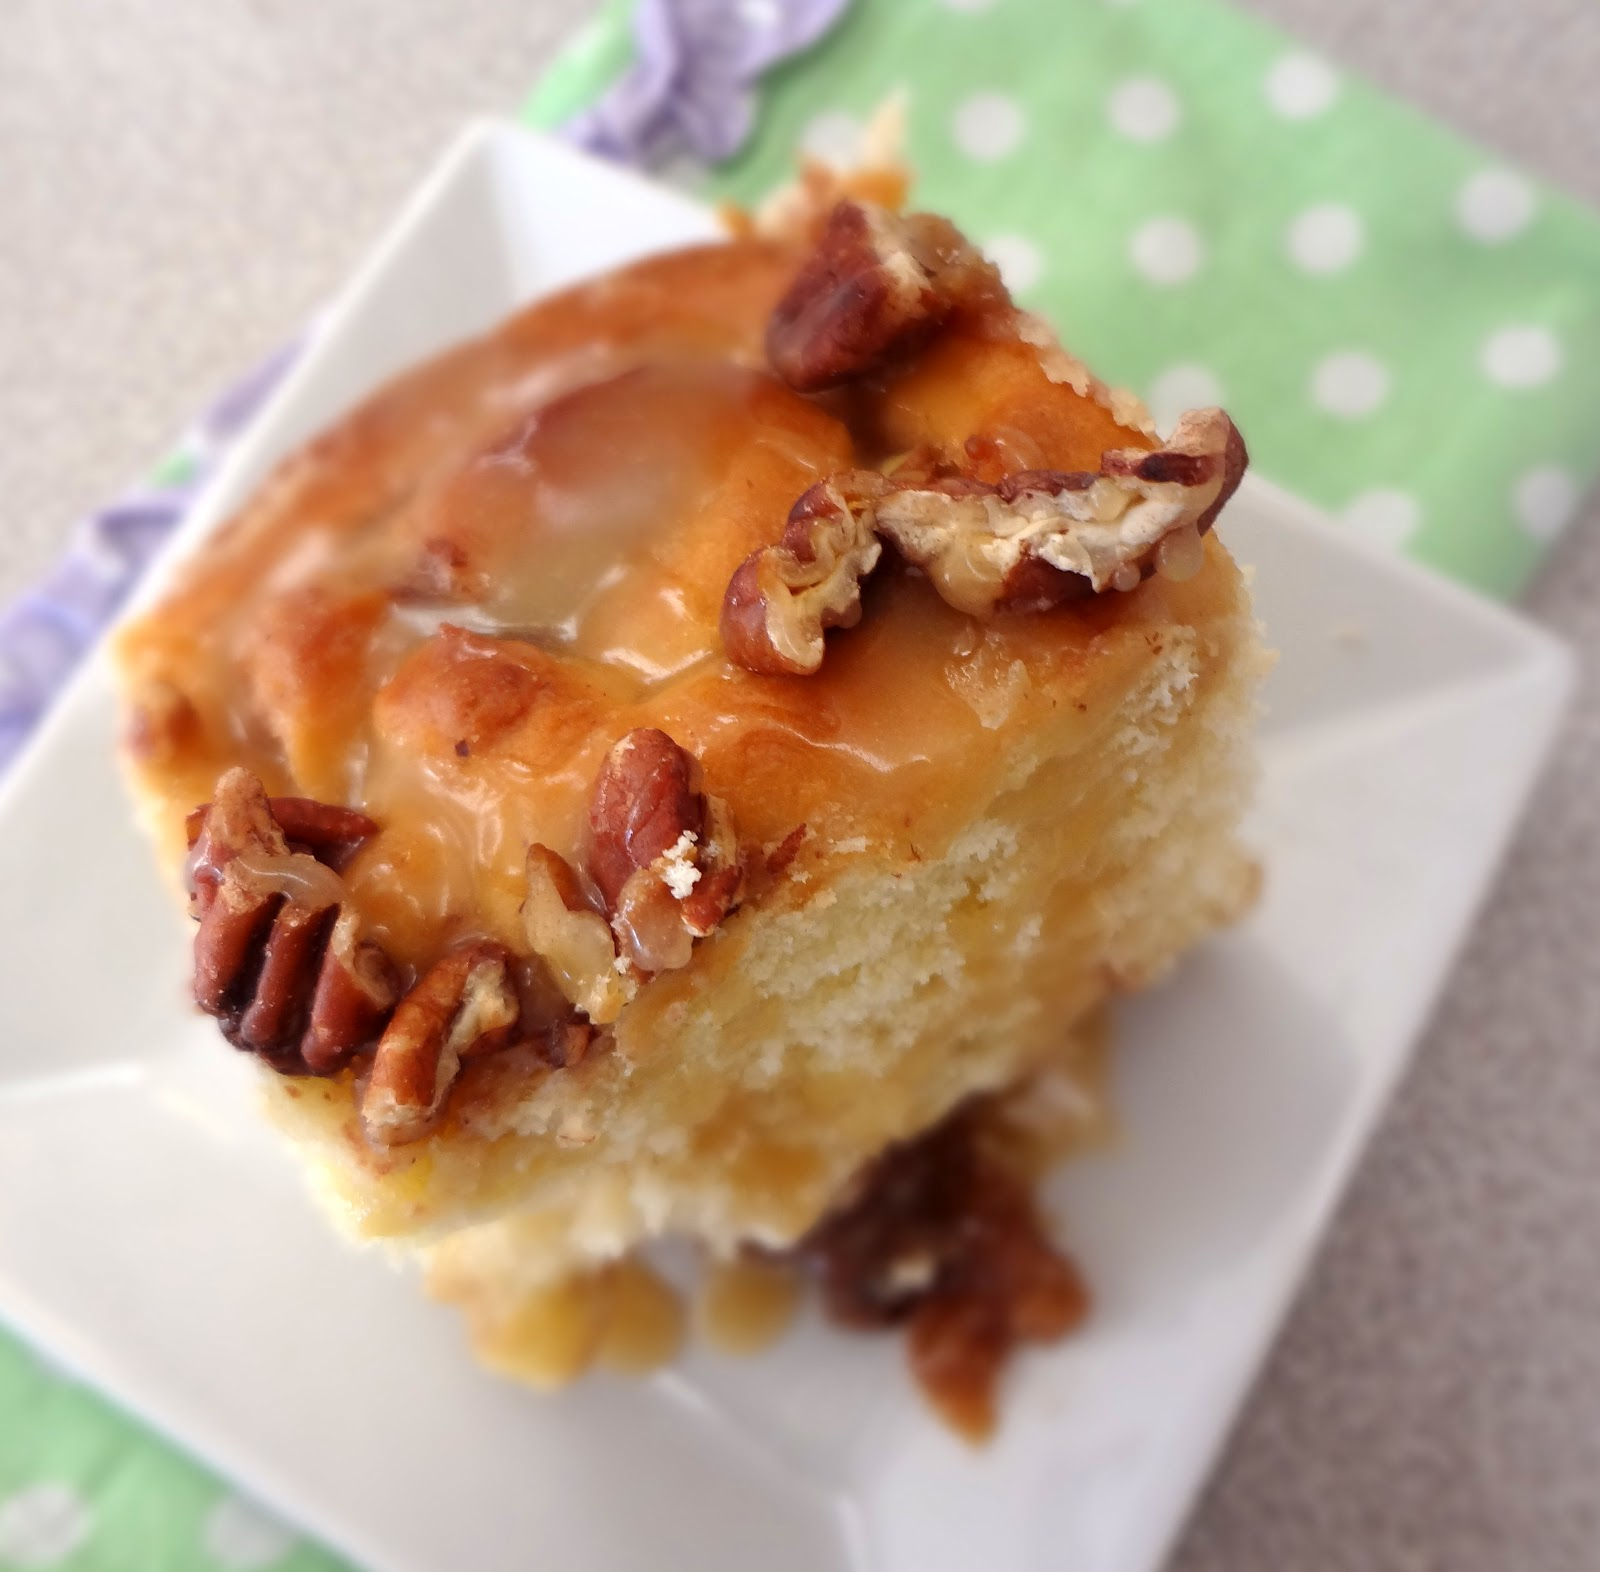 LESSON LEARNED: These sticky buns are pretty sweet. Cut them into ...